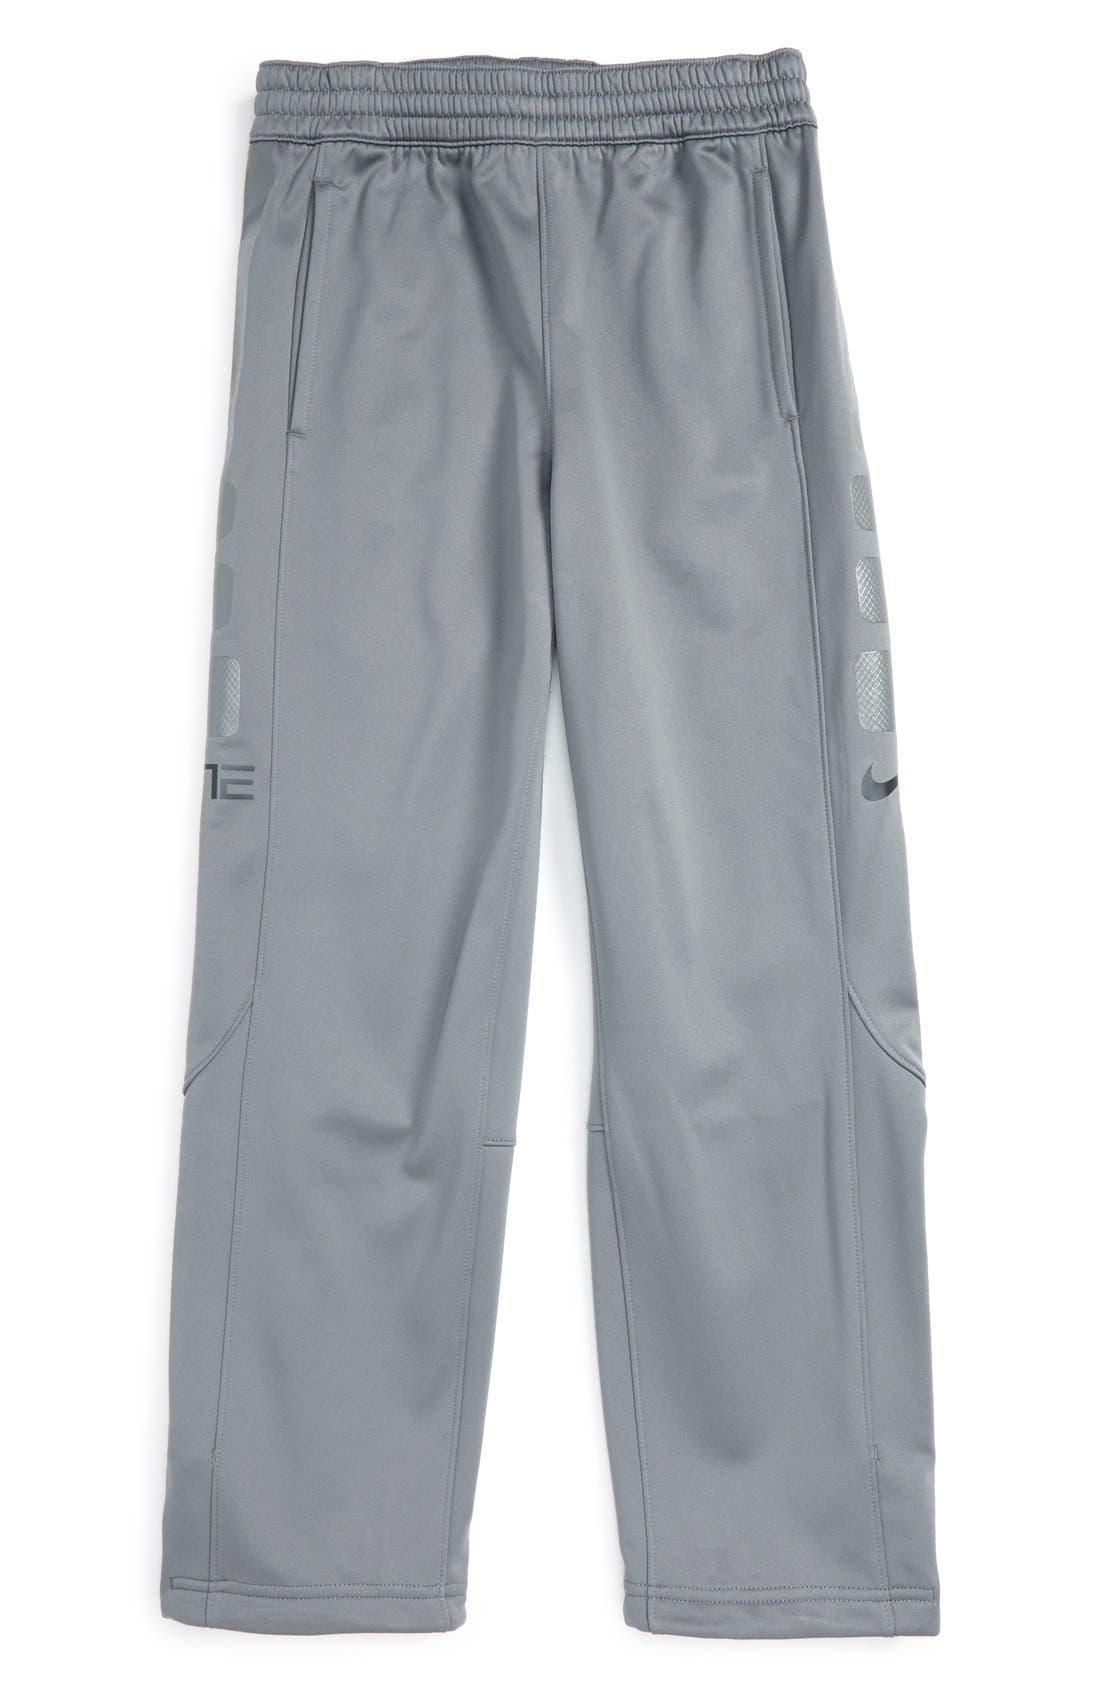 'Elite' Therma-FIT Pants,                         Main,                         color, Cool Grey/ Anthracite